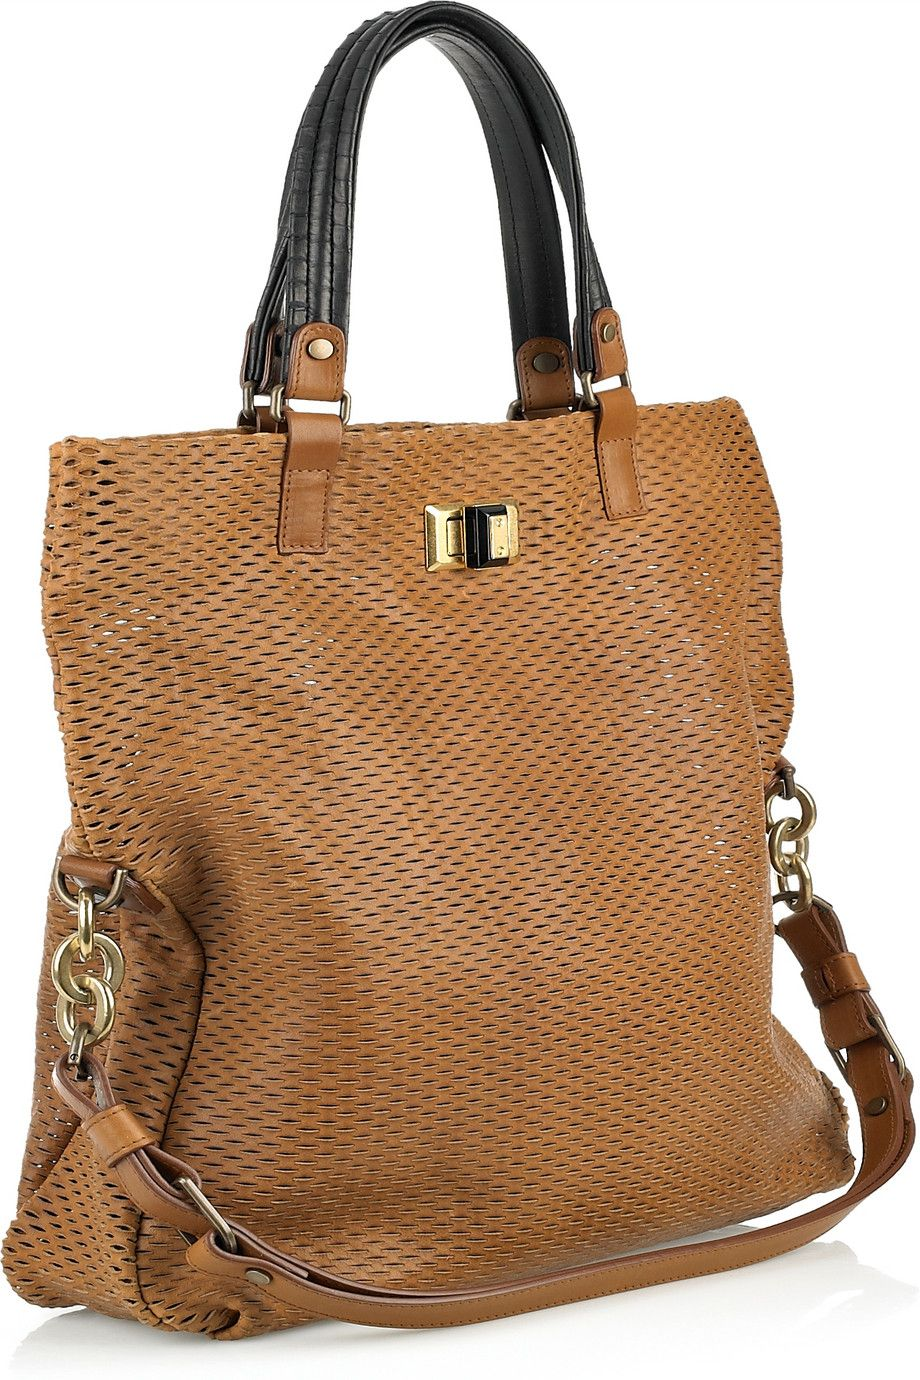 Lanvin - Reflex Shopping leather and python tote